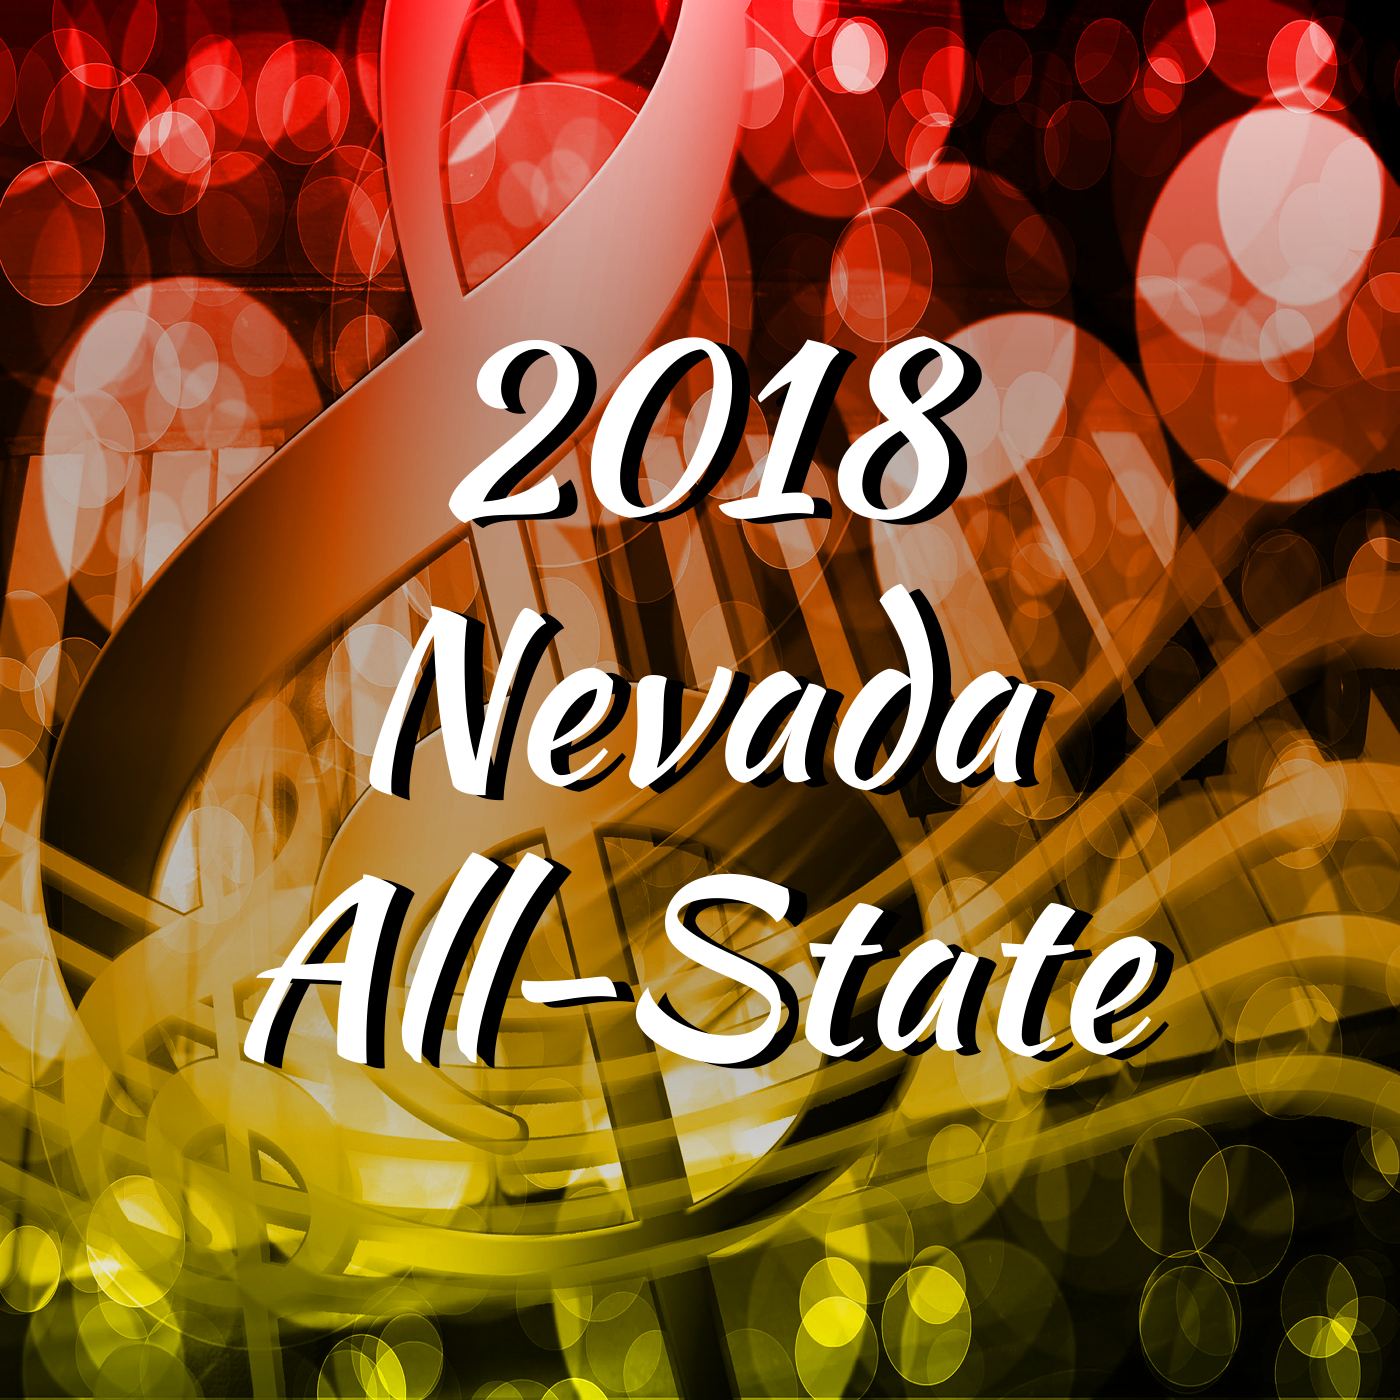 2018 Nevada All-State Music Conference